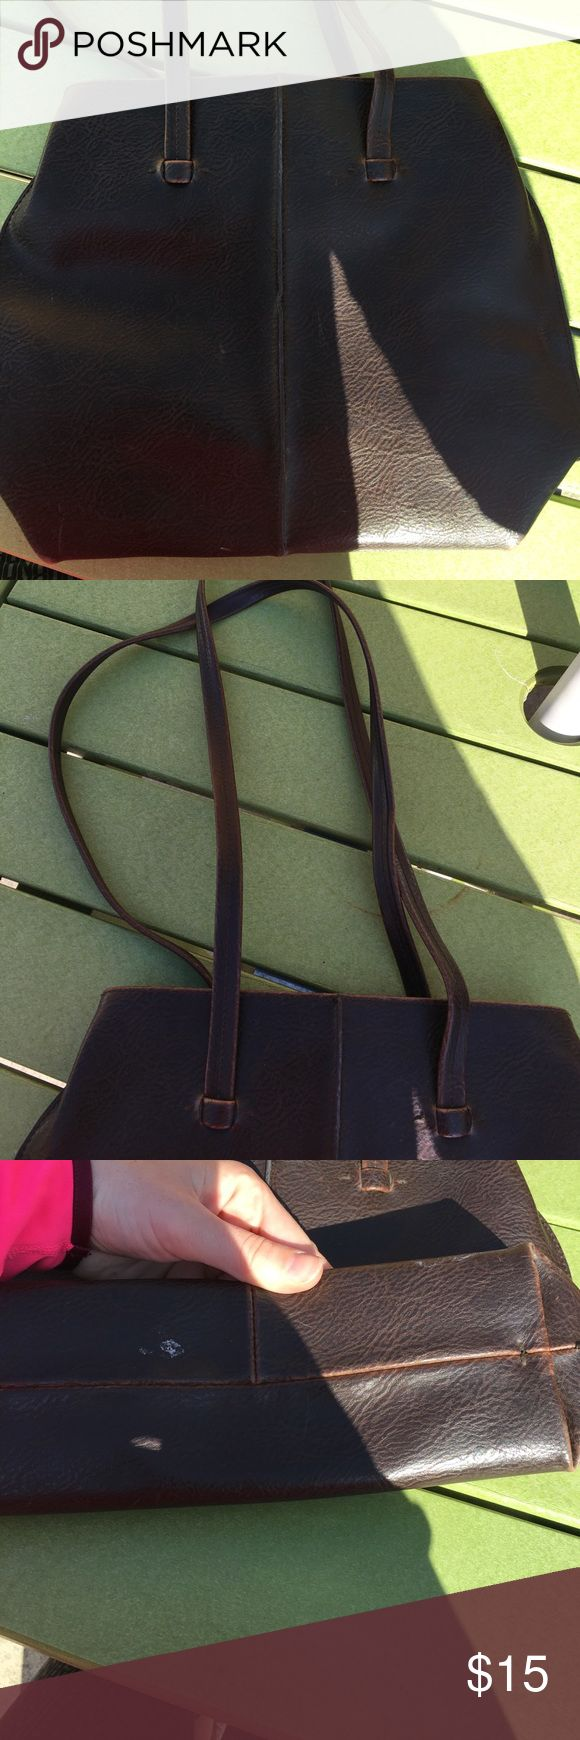 Brown leather purse Great condition leather purse. One small spot on the bottom. Brown. Liz Claiborne Bags Satchels